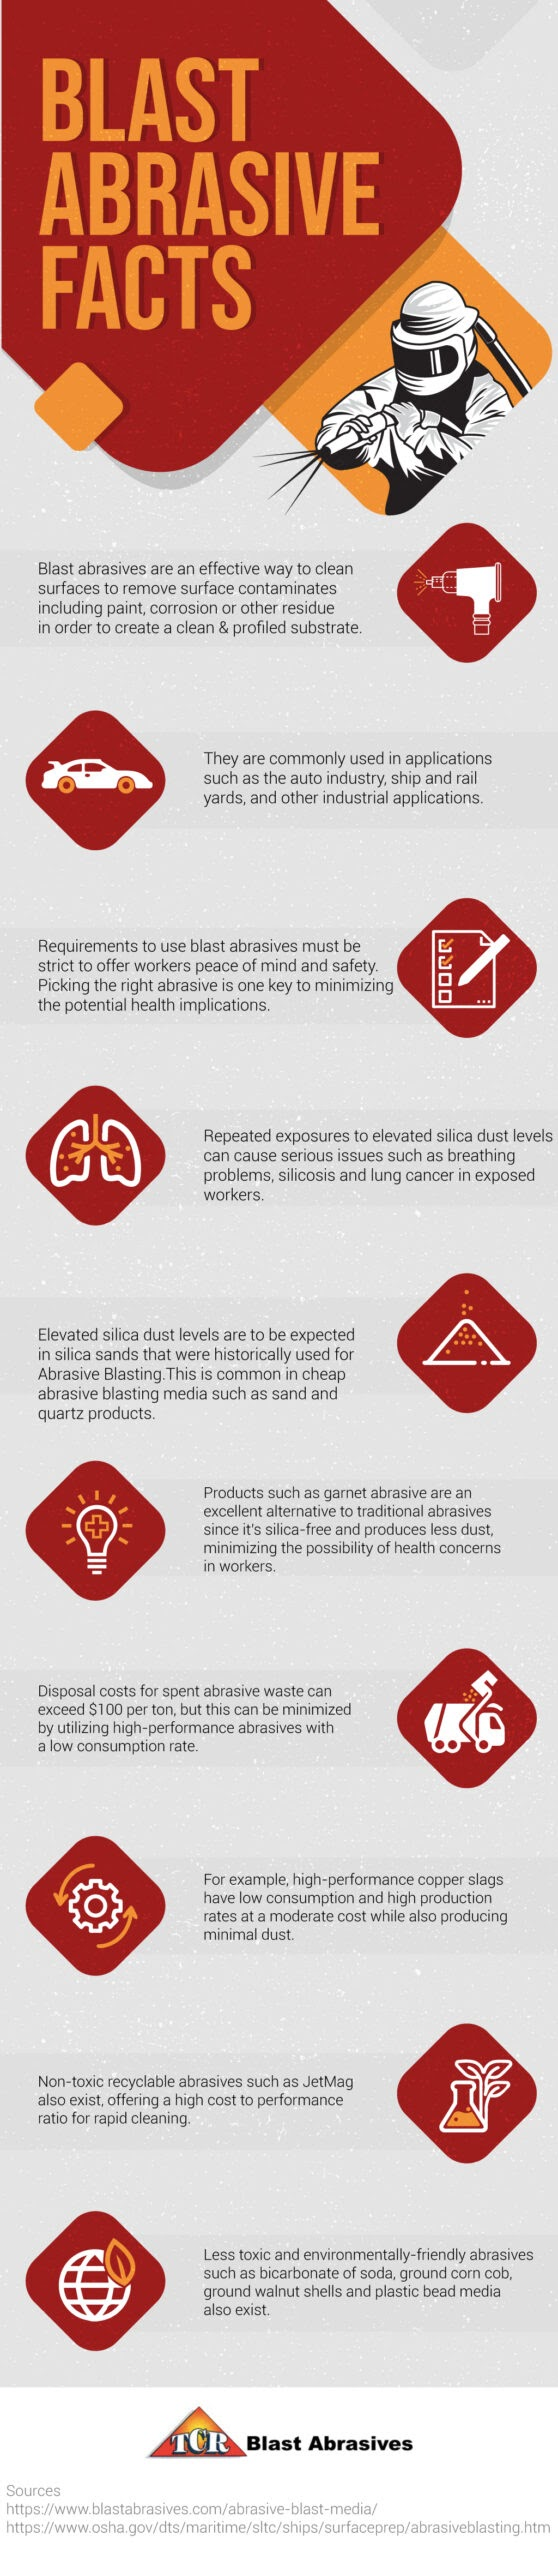 Ten Facts About Abrasive Blast #infographic